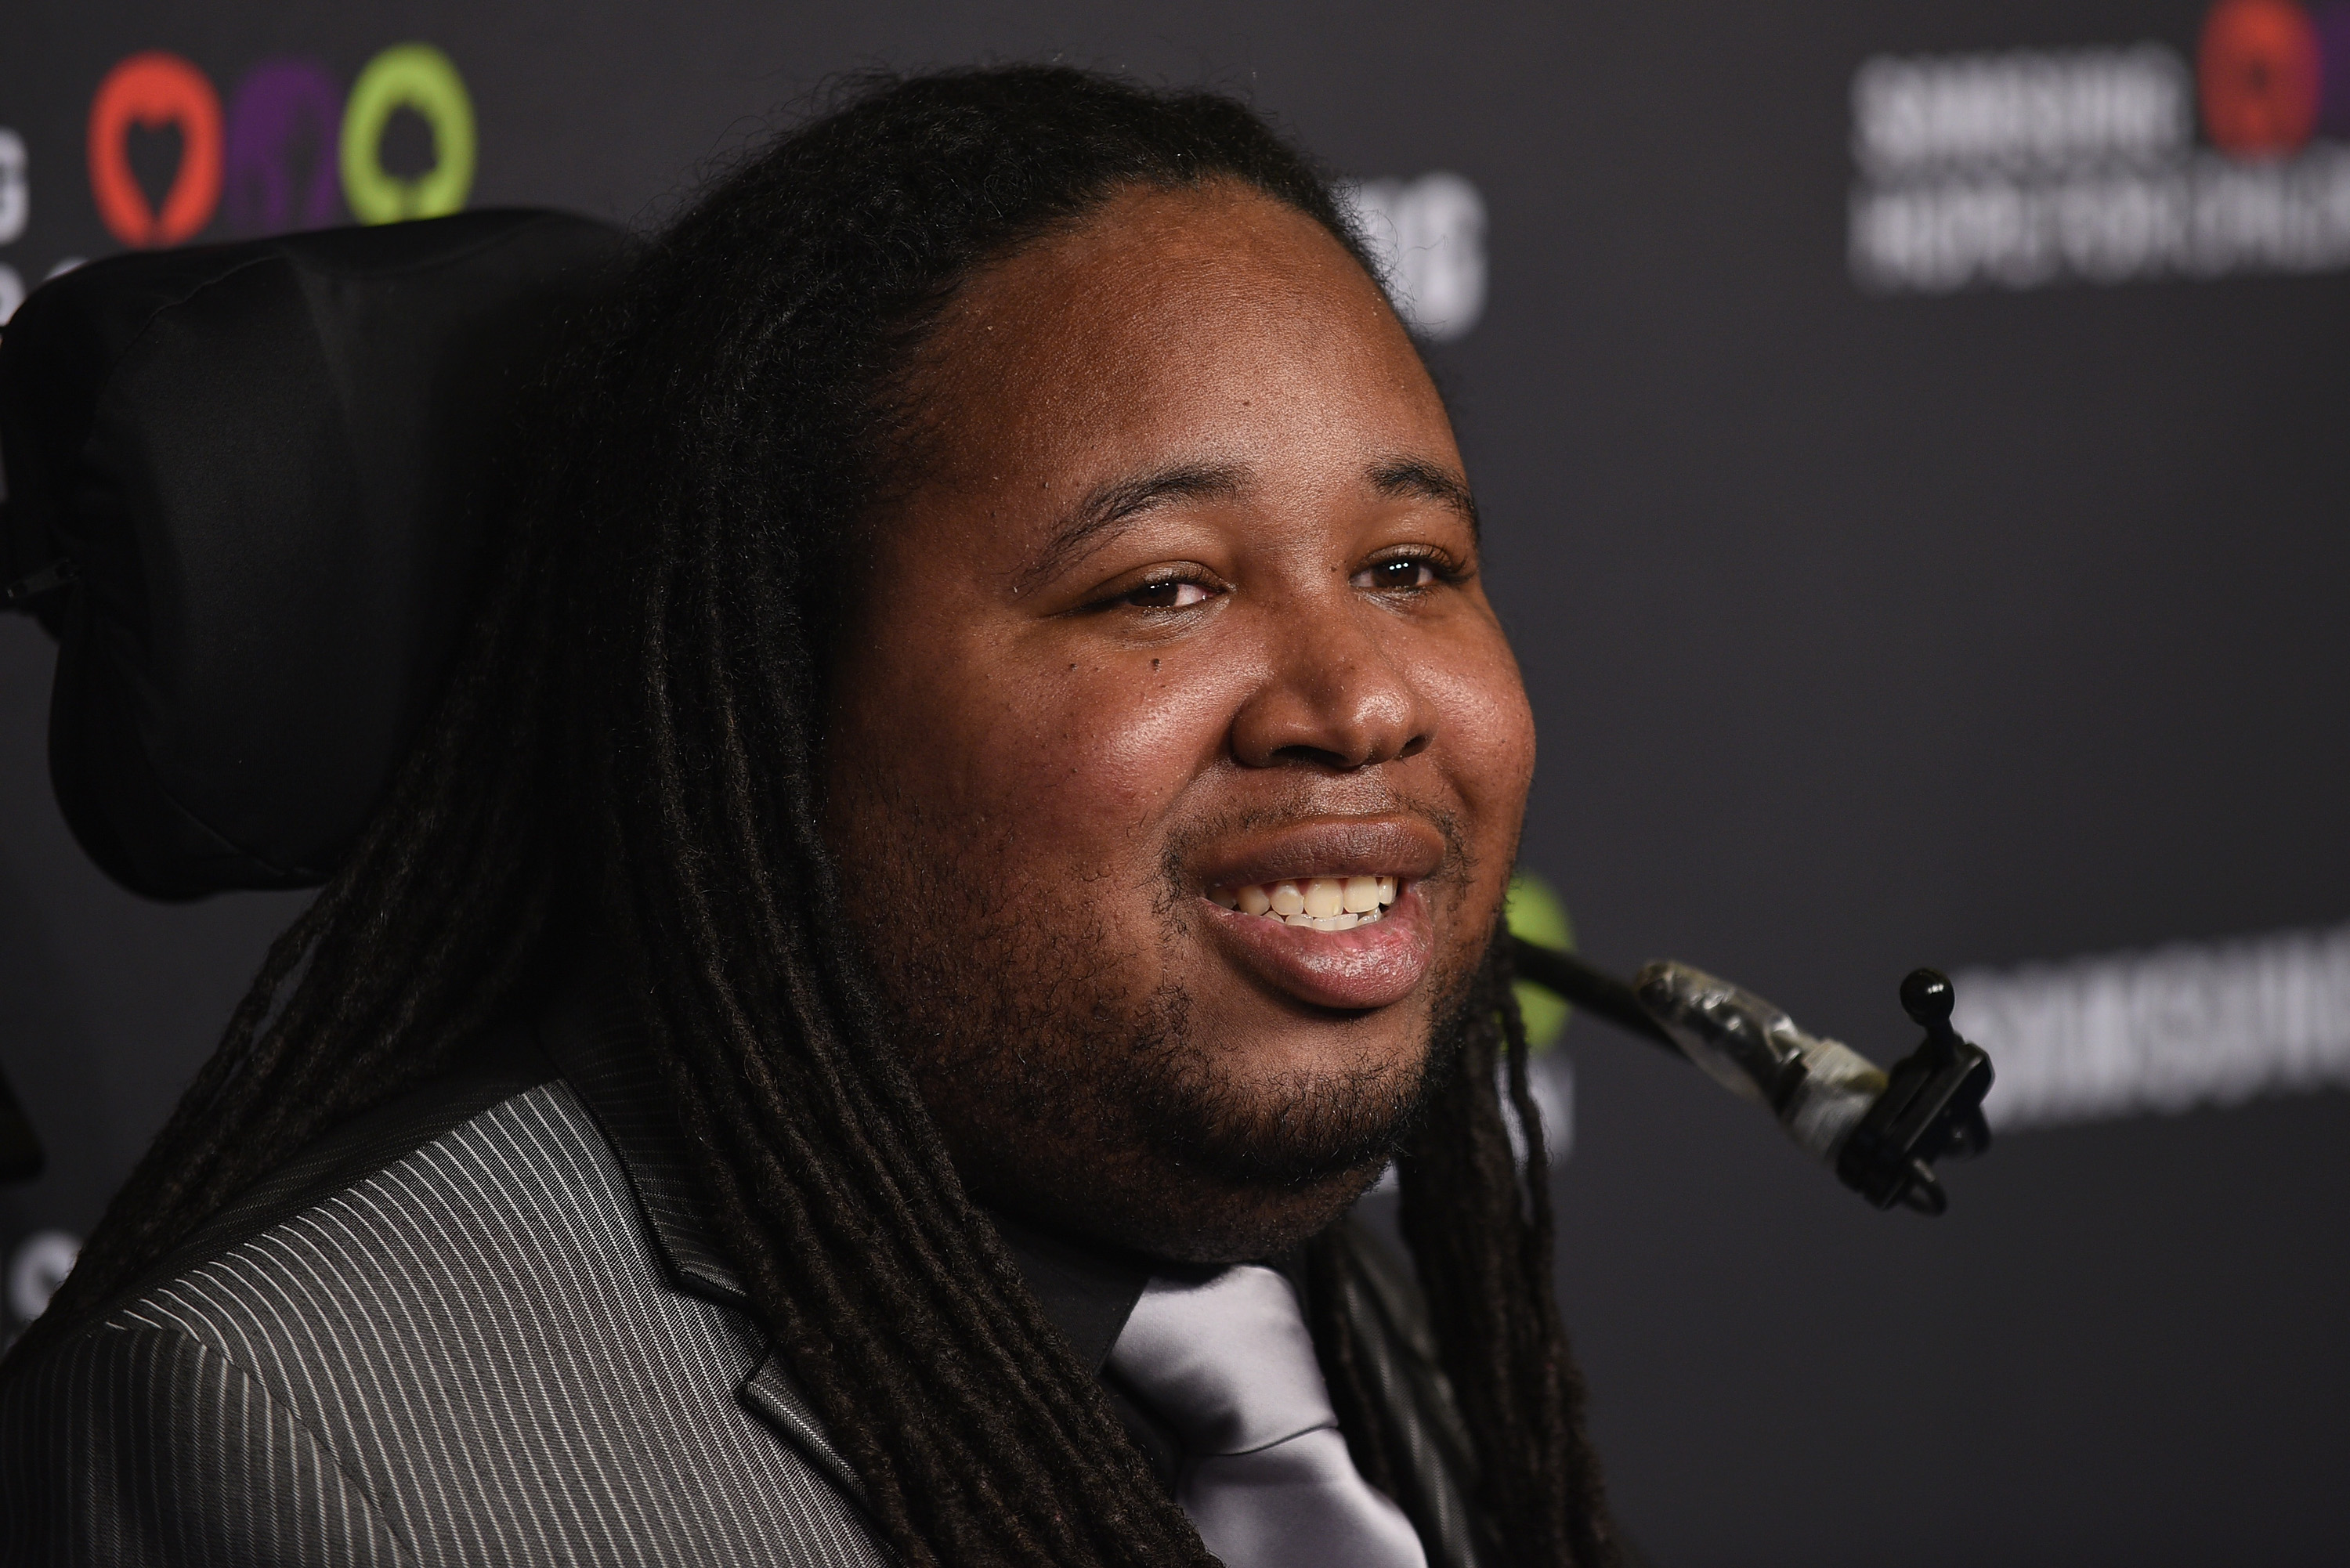 Eric LeGrand attends a charity event